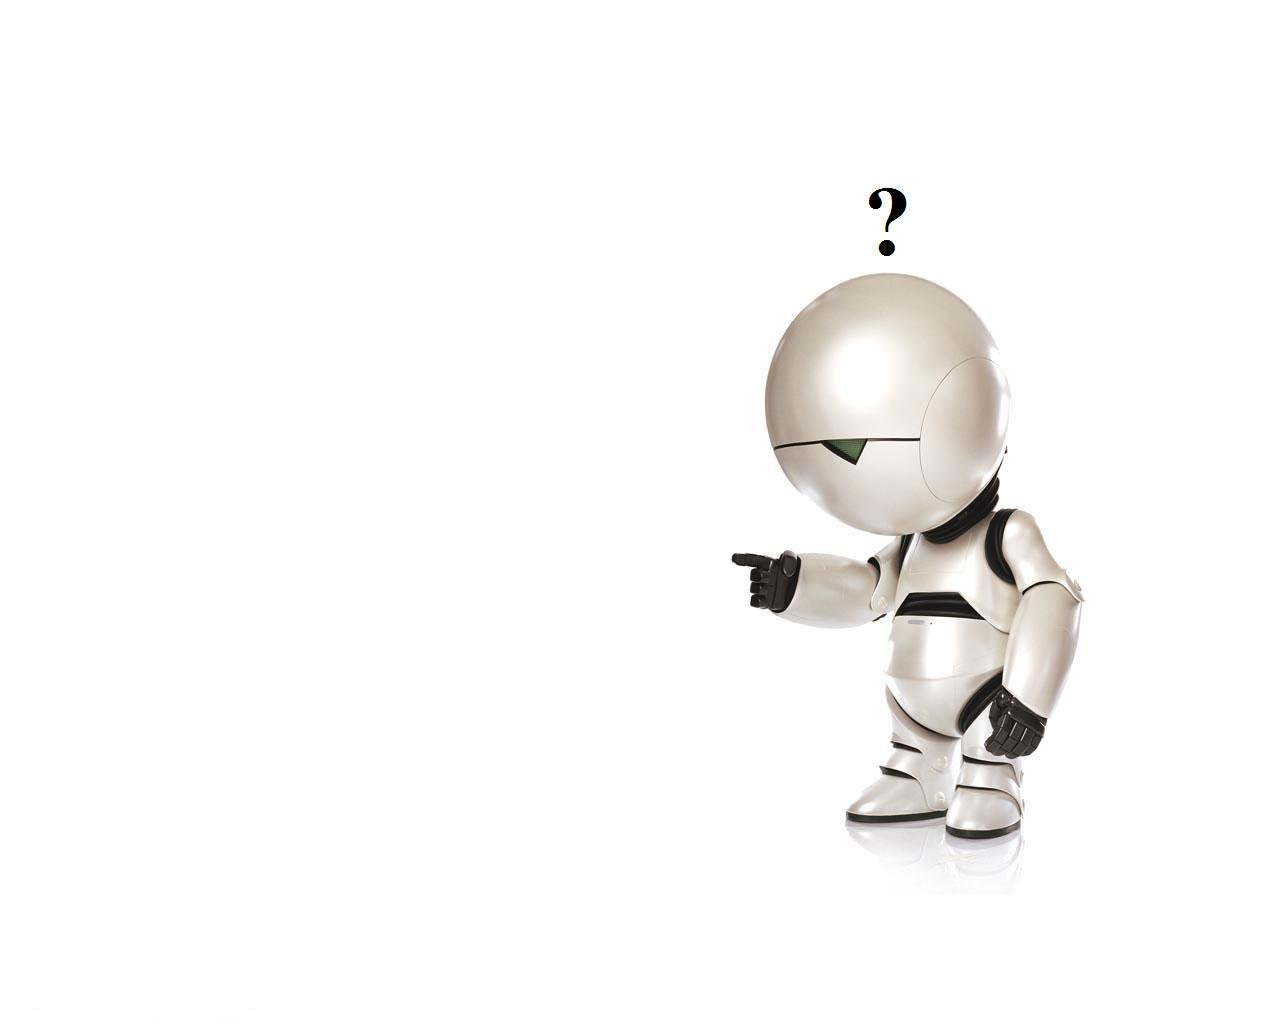 robot graphical design simple white background with cool 3d kid robot 1280x1024